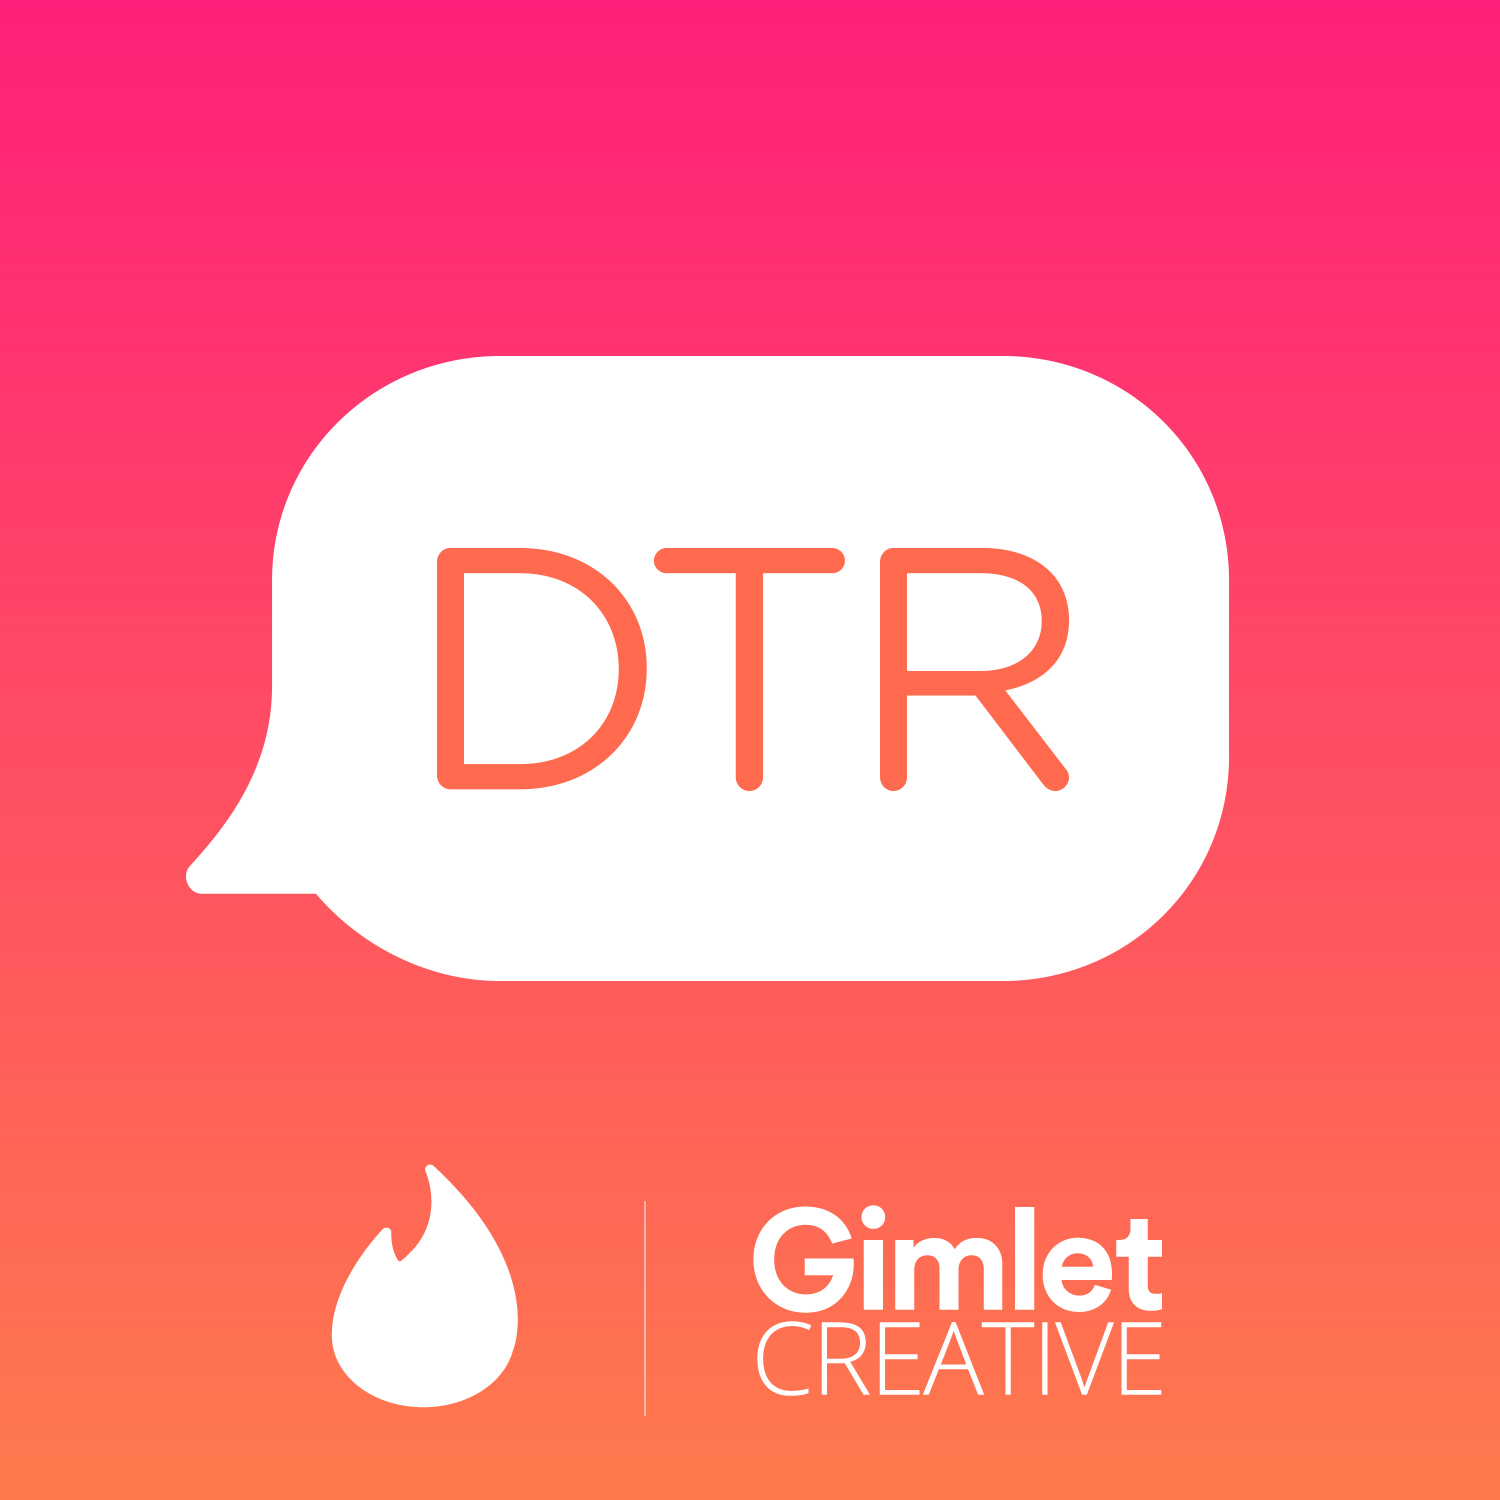 There's no denying it: technology has changed the rules of the game. - DTR is a show about everything from opening lines to the pics you post to dating someone out of your league. Each episode explores the good and bad, the hilarious and awkward, the wonderful and bizarre aspects of defining relationships in today's world.